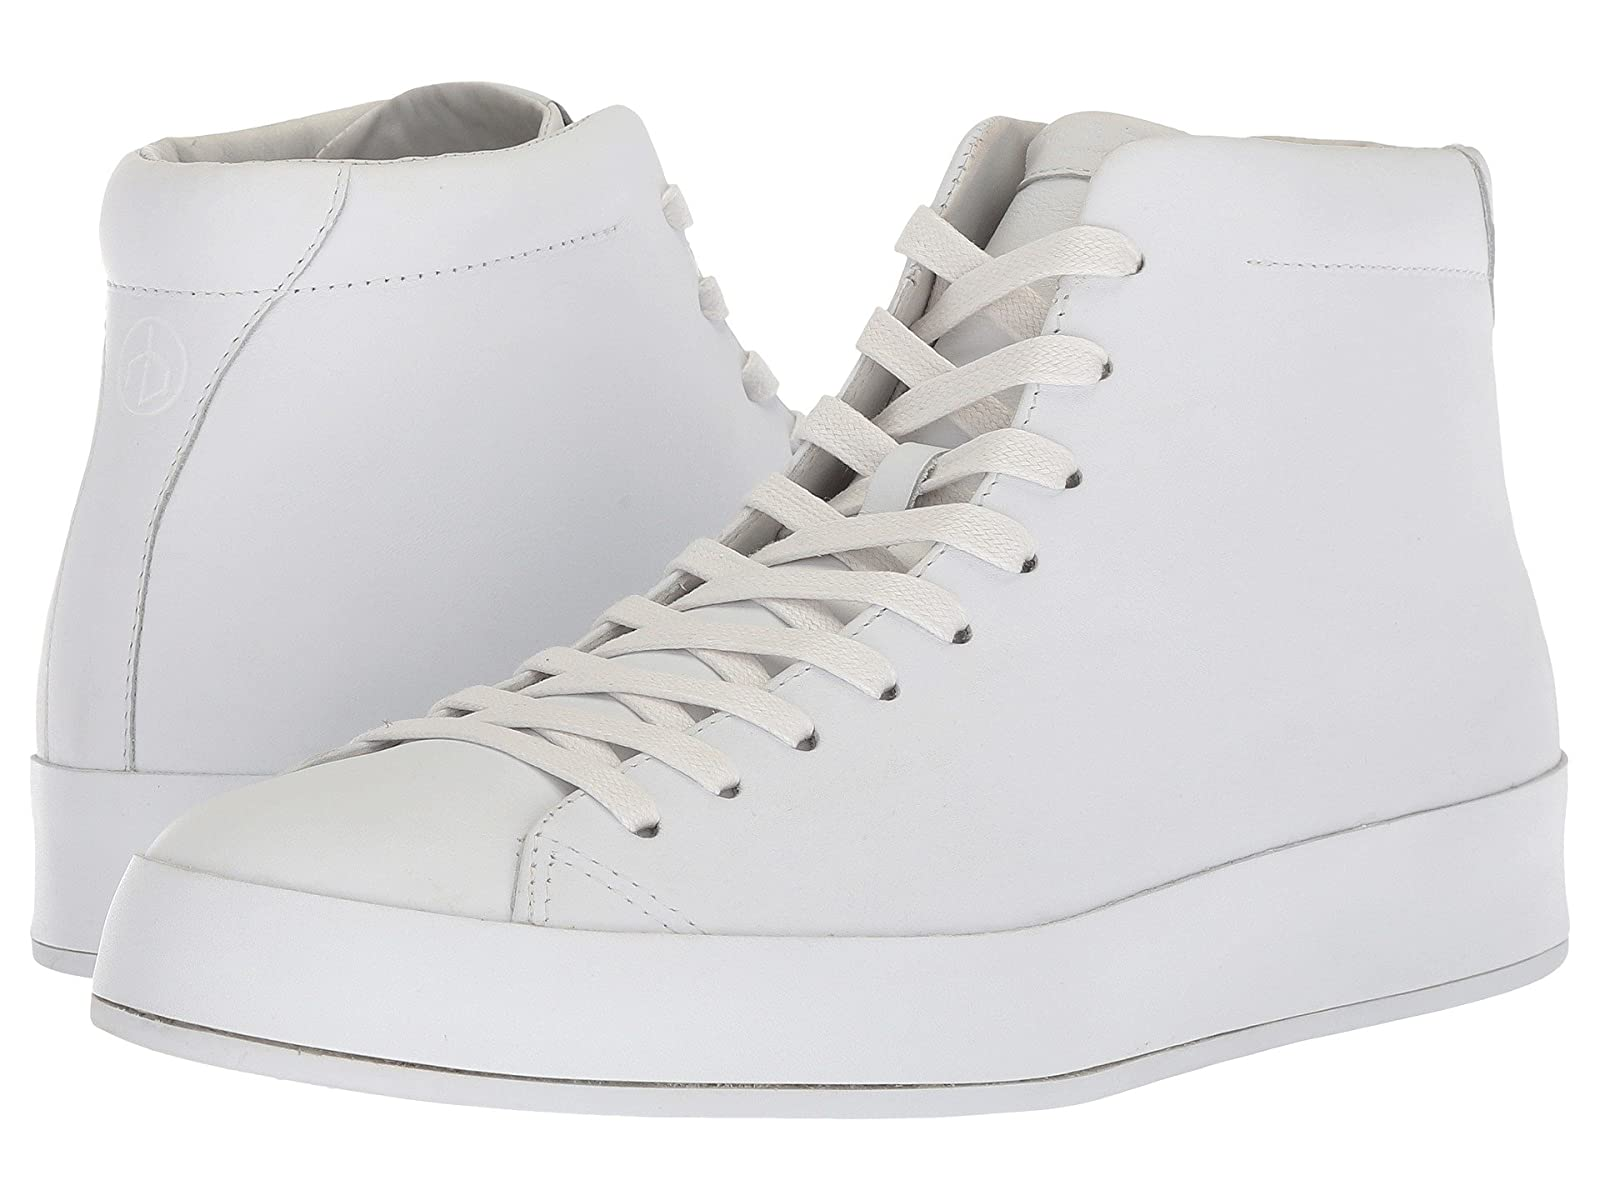 rag & bone RB1 High Top SneakersCheap and distinctive eye-catching shoes